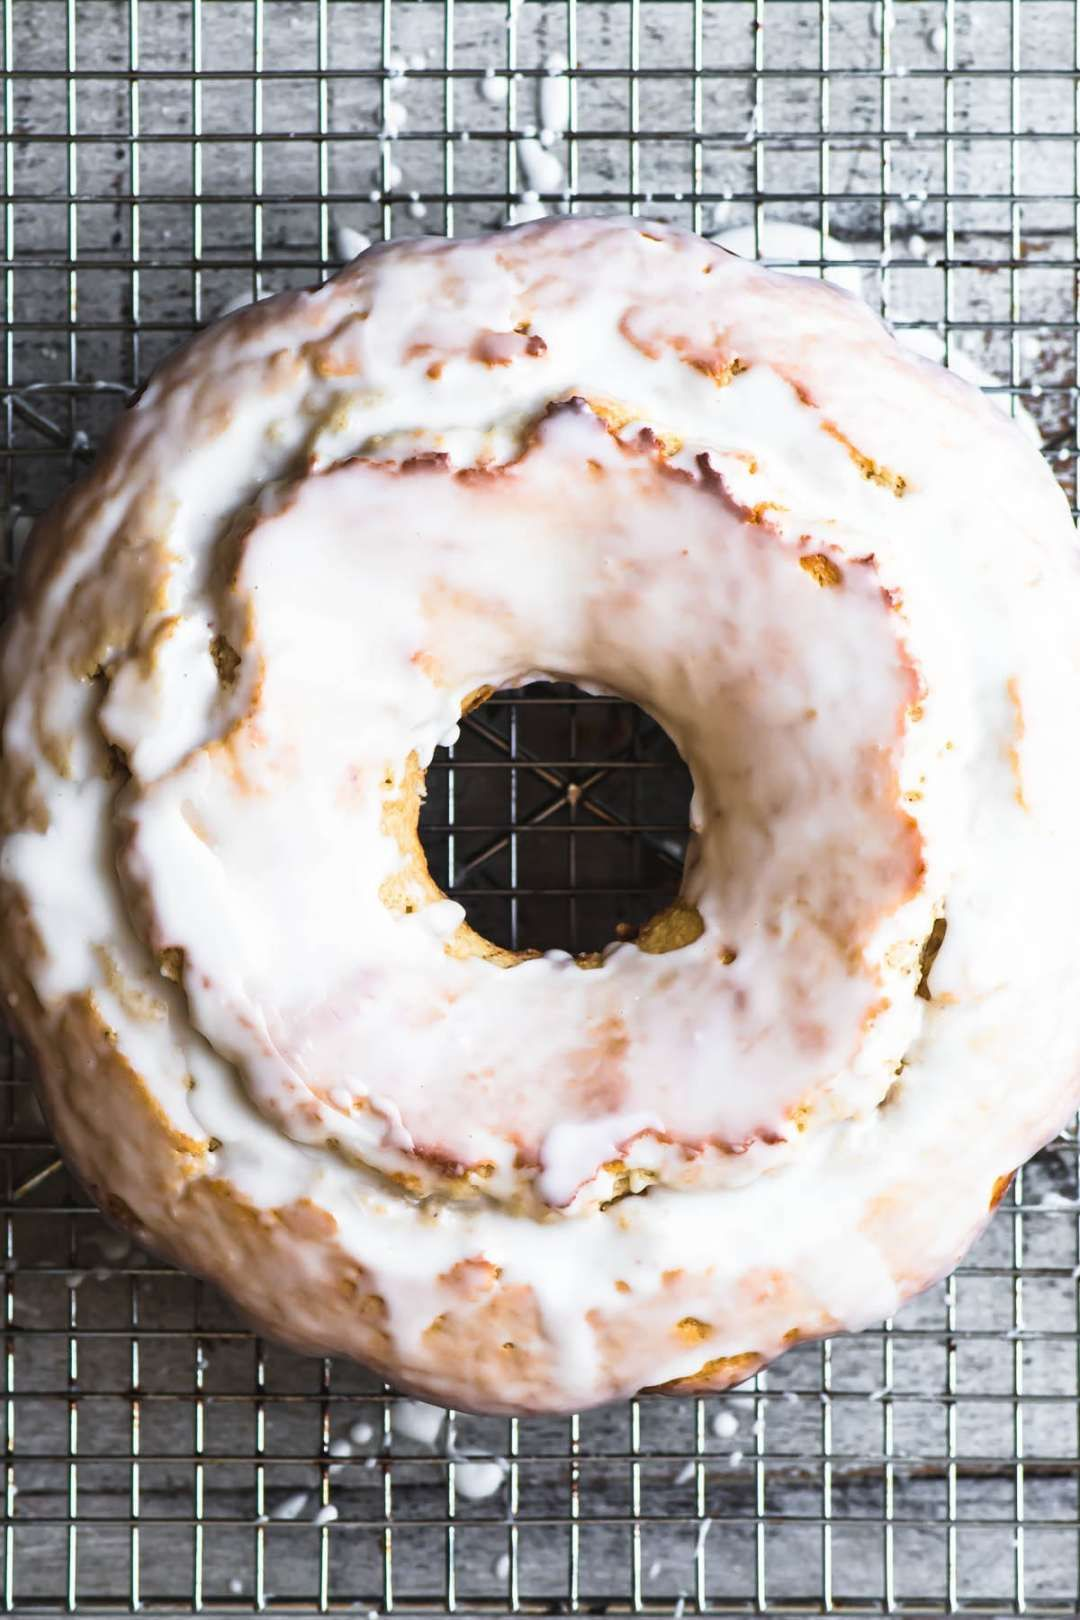 Glazed Old Fashioned Buttermilk Doughnut Bundt Cake | The View from Great Island